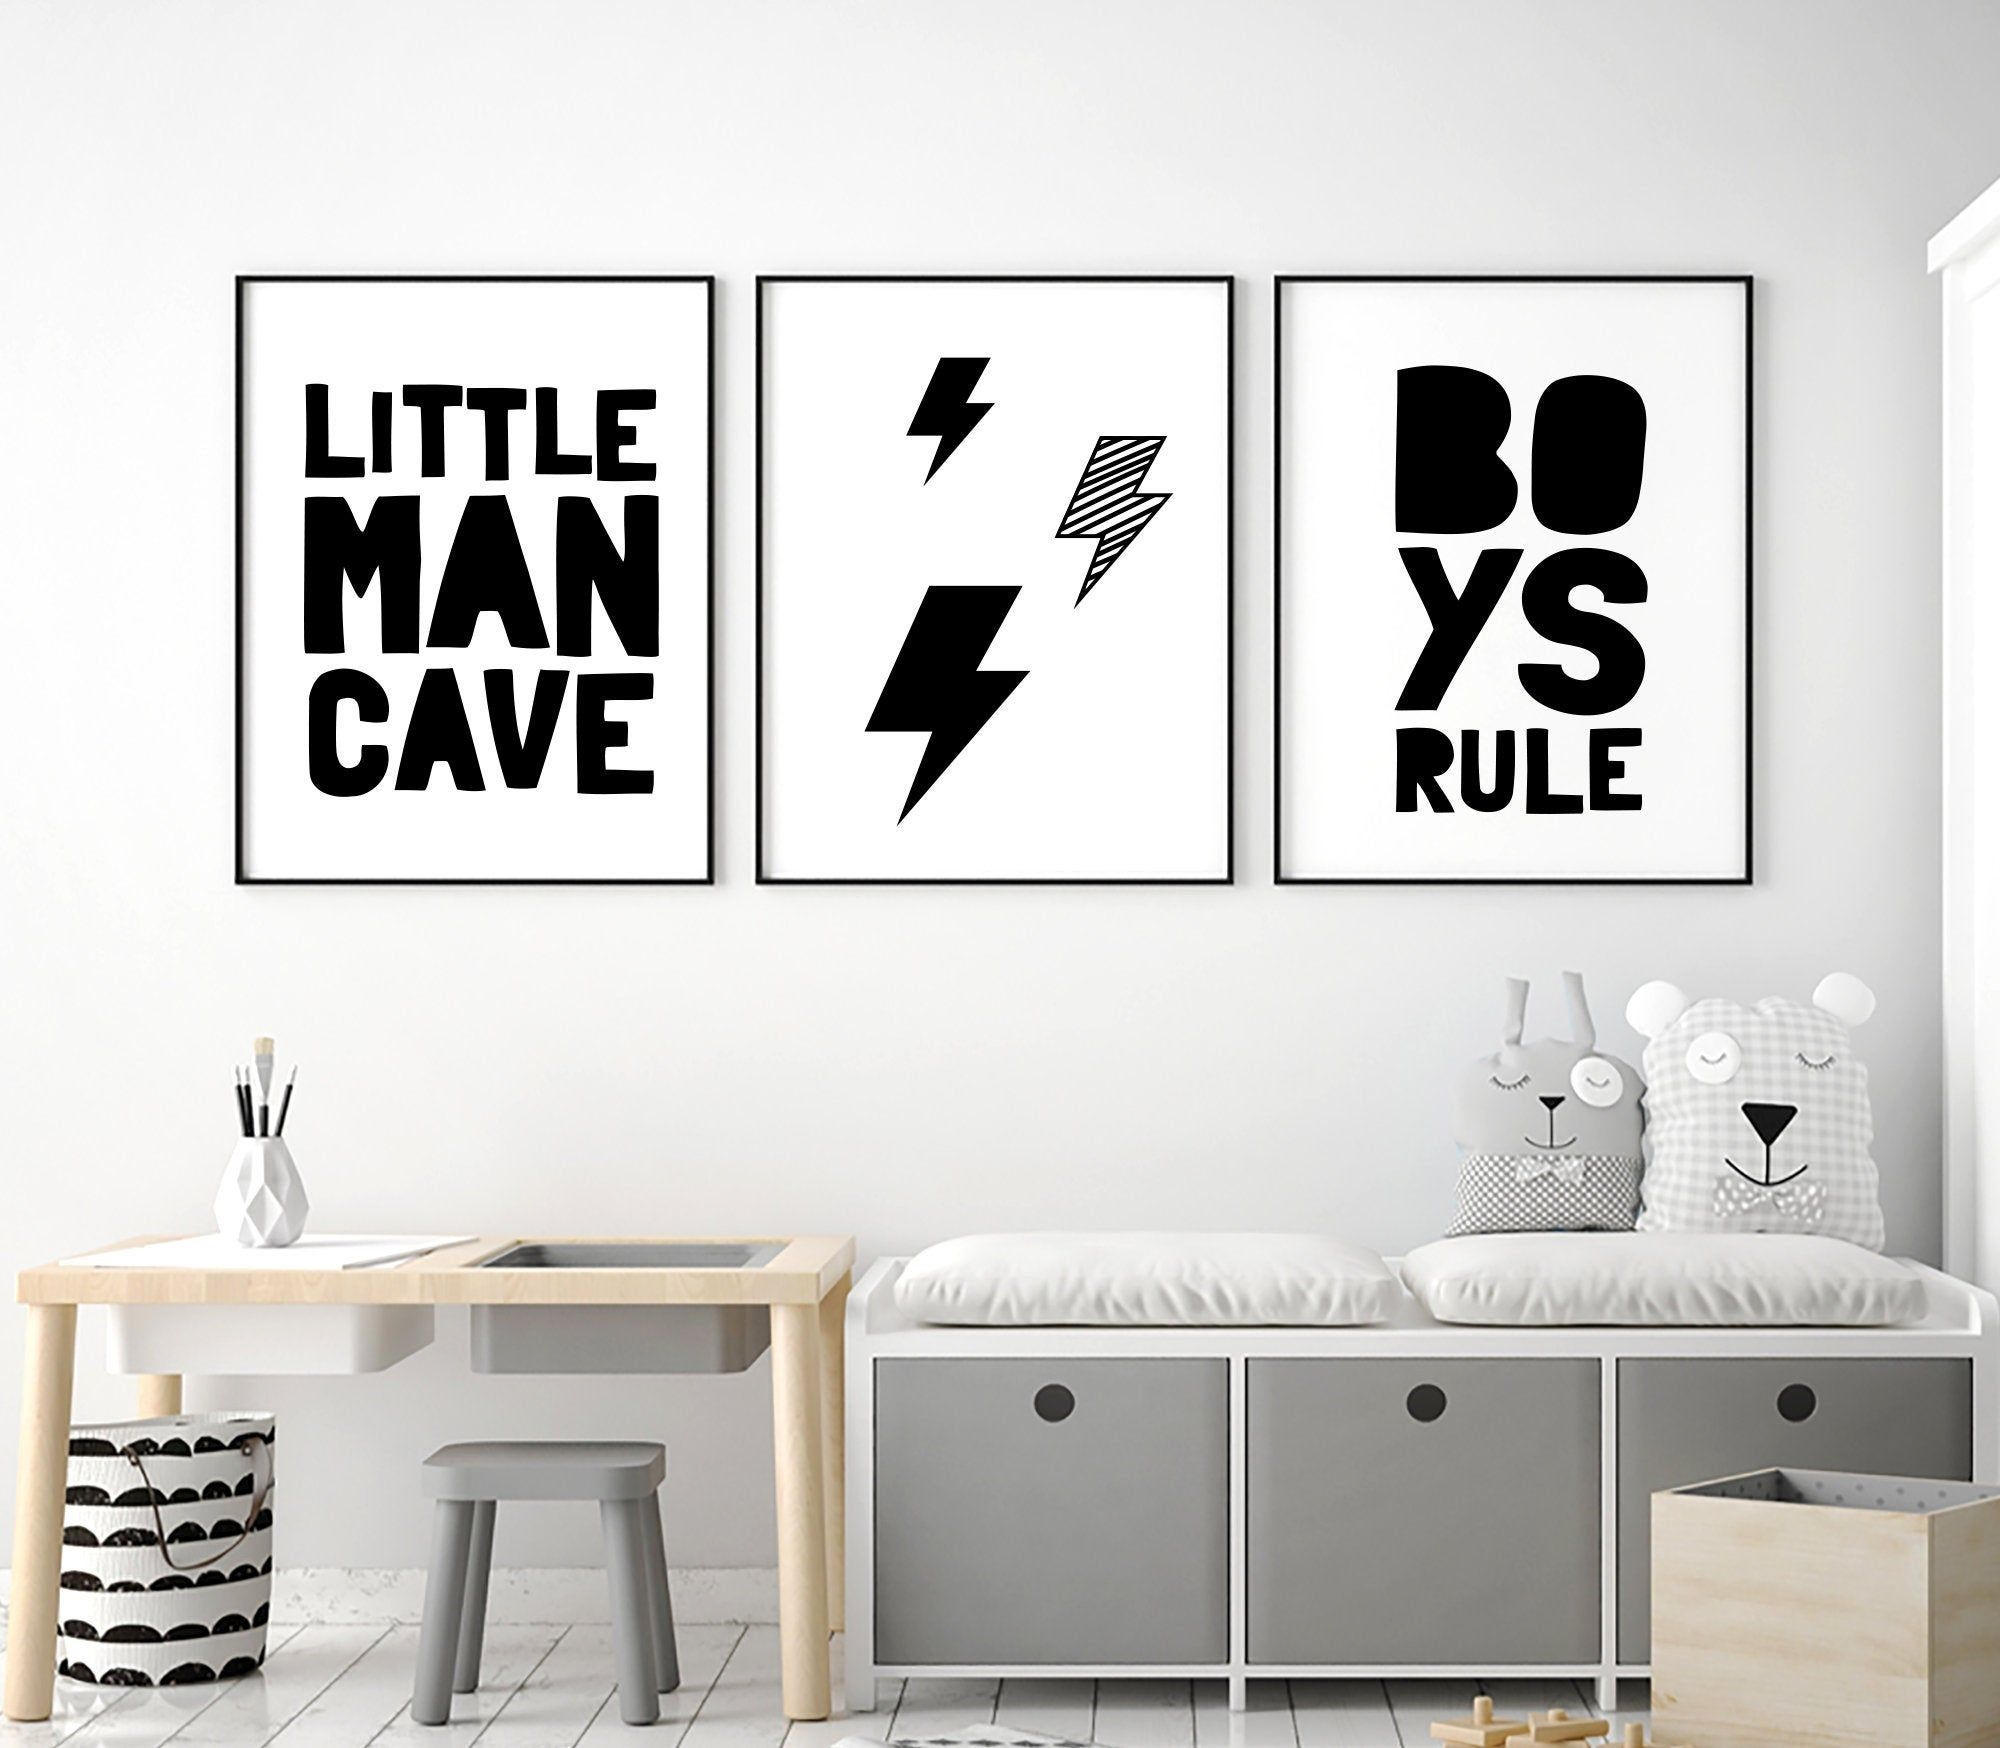 Boys Printable Art Little Man Cave Boys Rule Set Of 3 Wall Art Boys Bedroom Print Set Boy Quotes Boys Nursery Decor Instant Download Boys Bedroom Wall Art Nursery Decor Boy